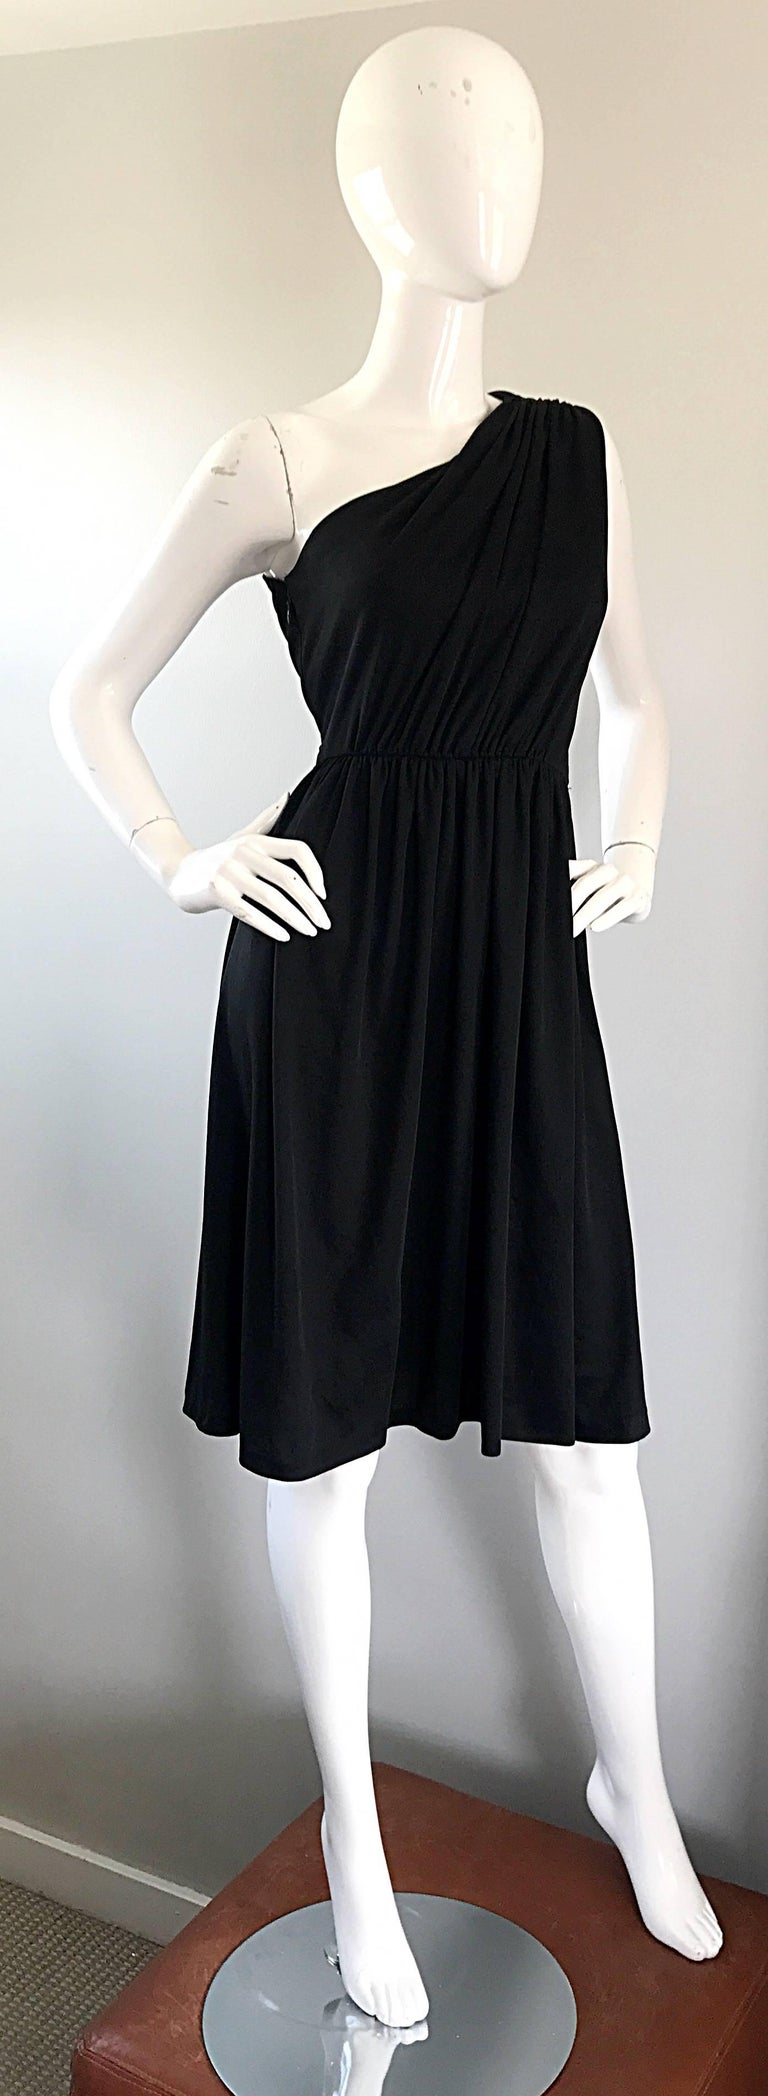 1970s Anthony Muto for Joseph Magnin Black Jersey One Shoulder 70s Grecian Dress In Excellent Condition For Sale In Chicago, IL